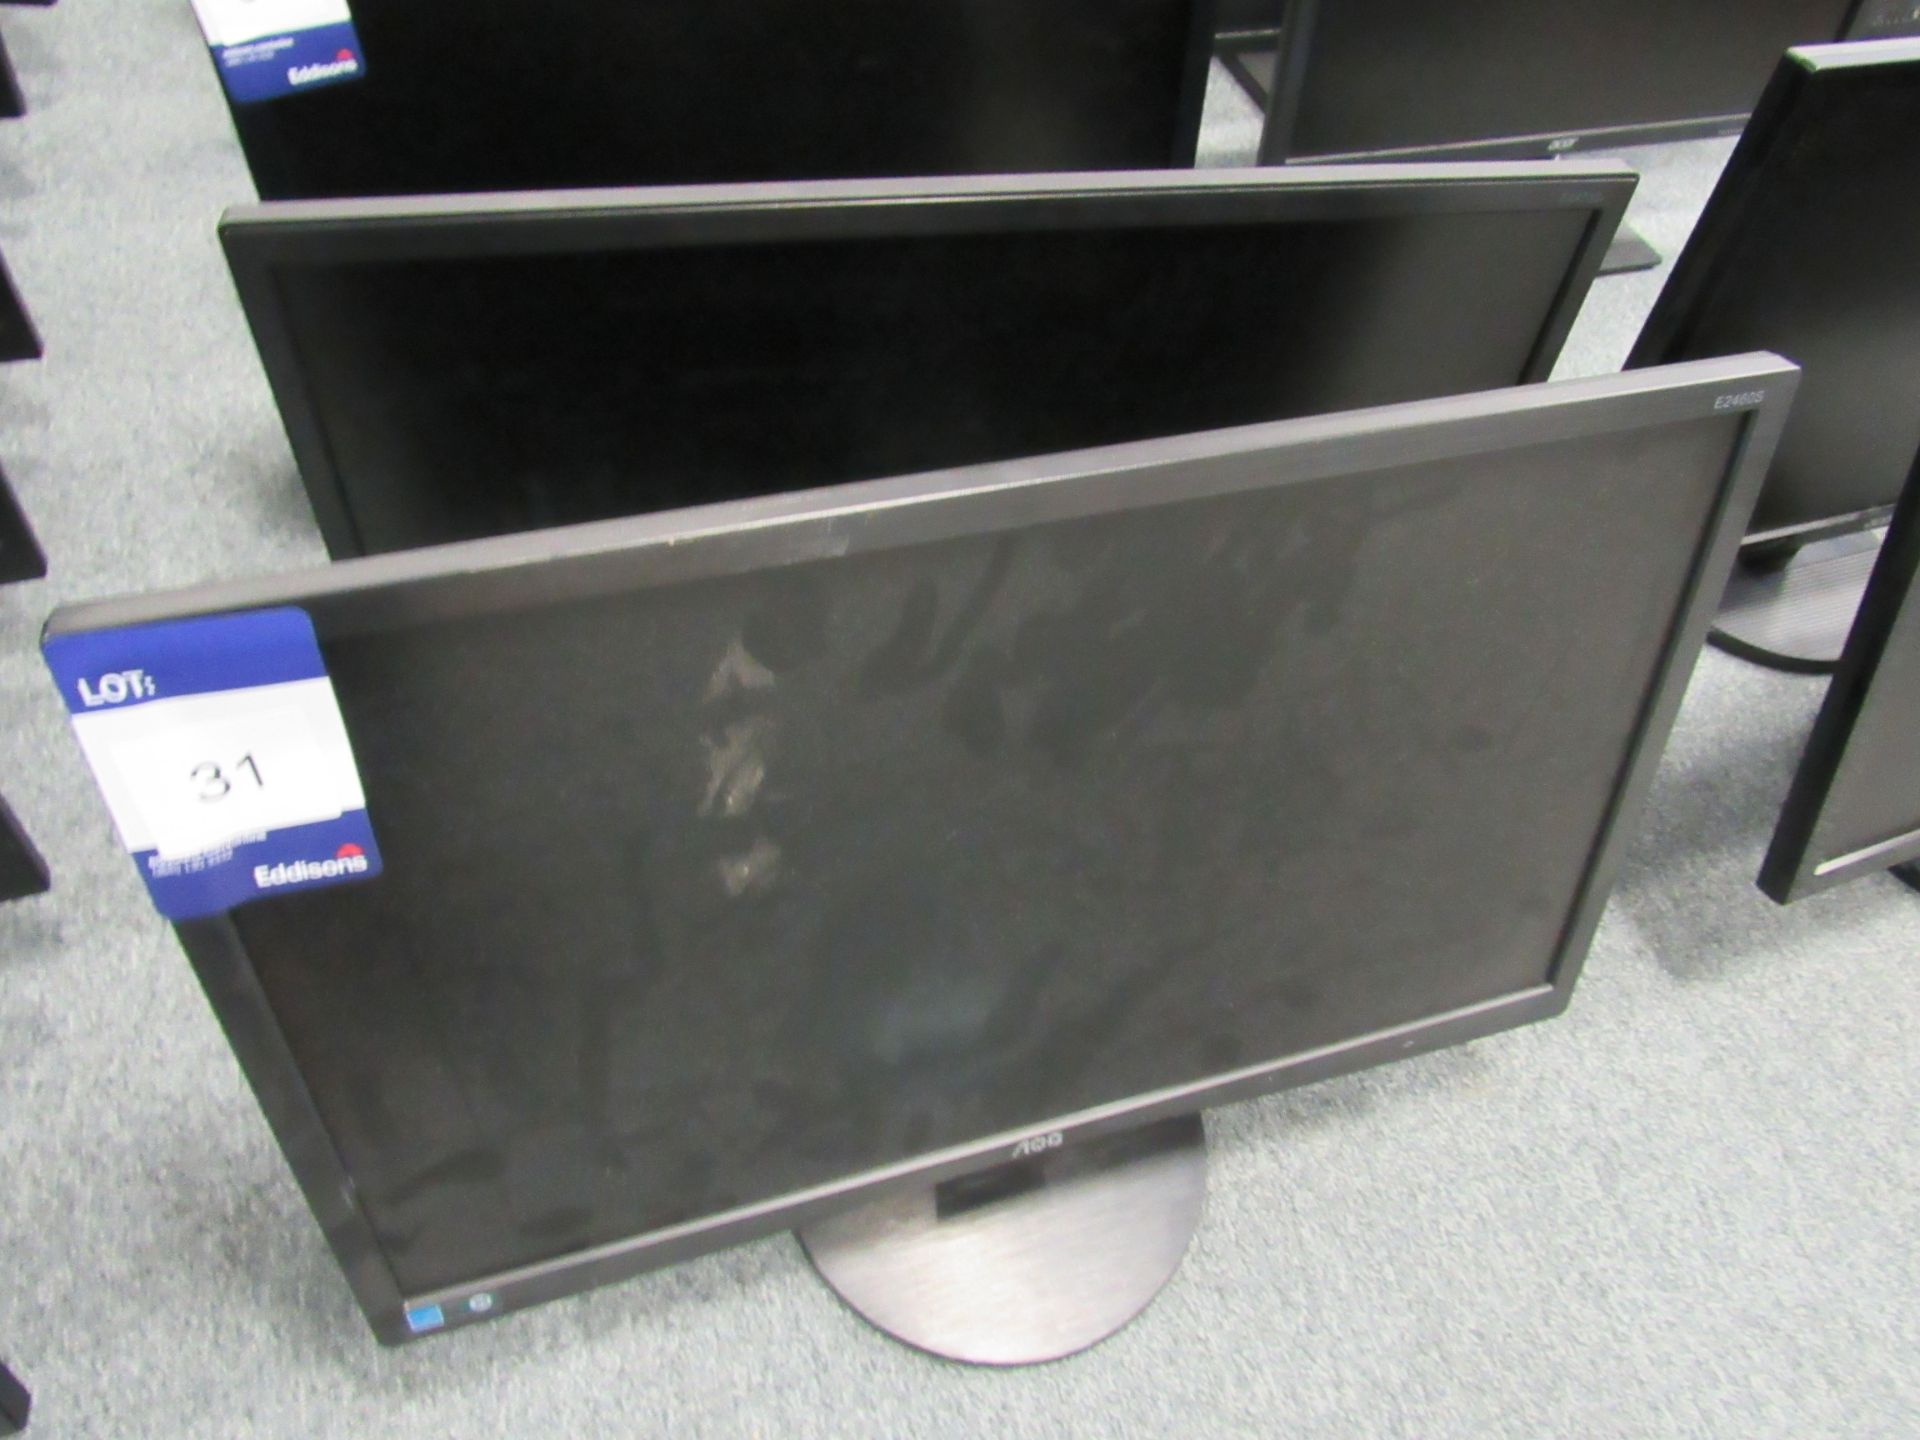 Lot 31 - 2 AOC E2460S Flat Screen Monitors